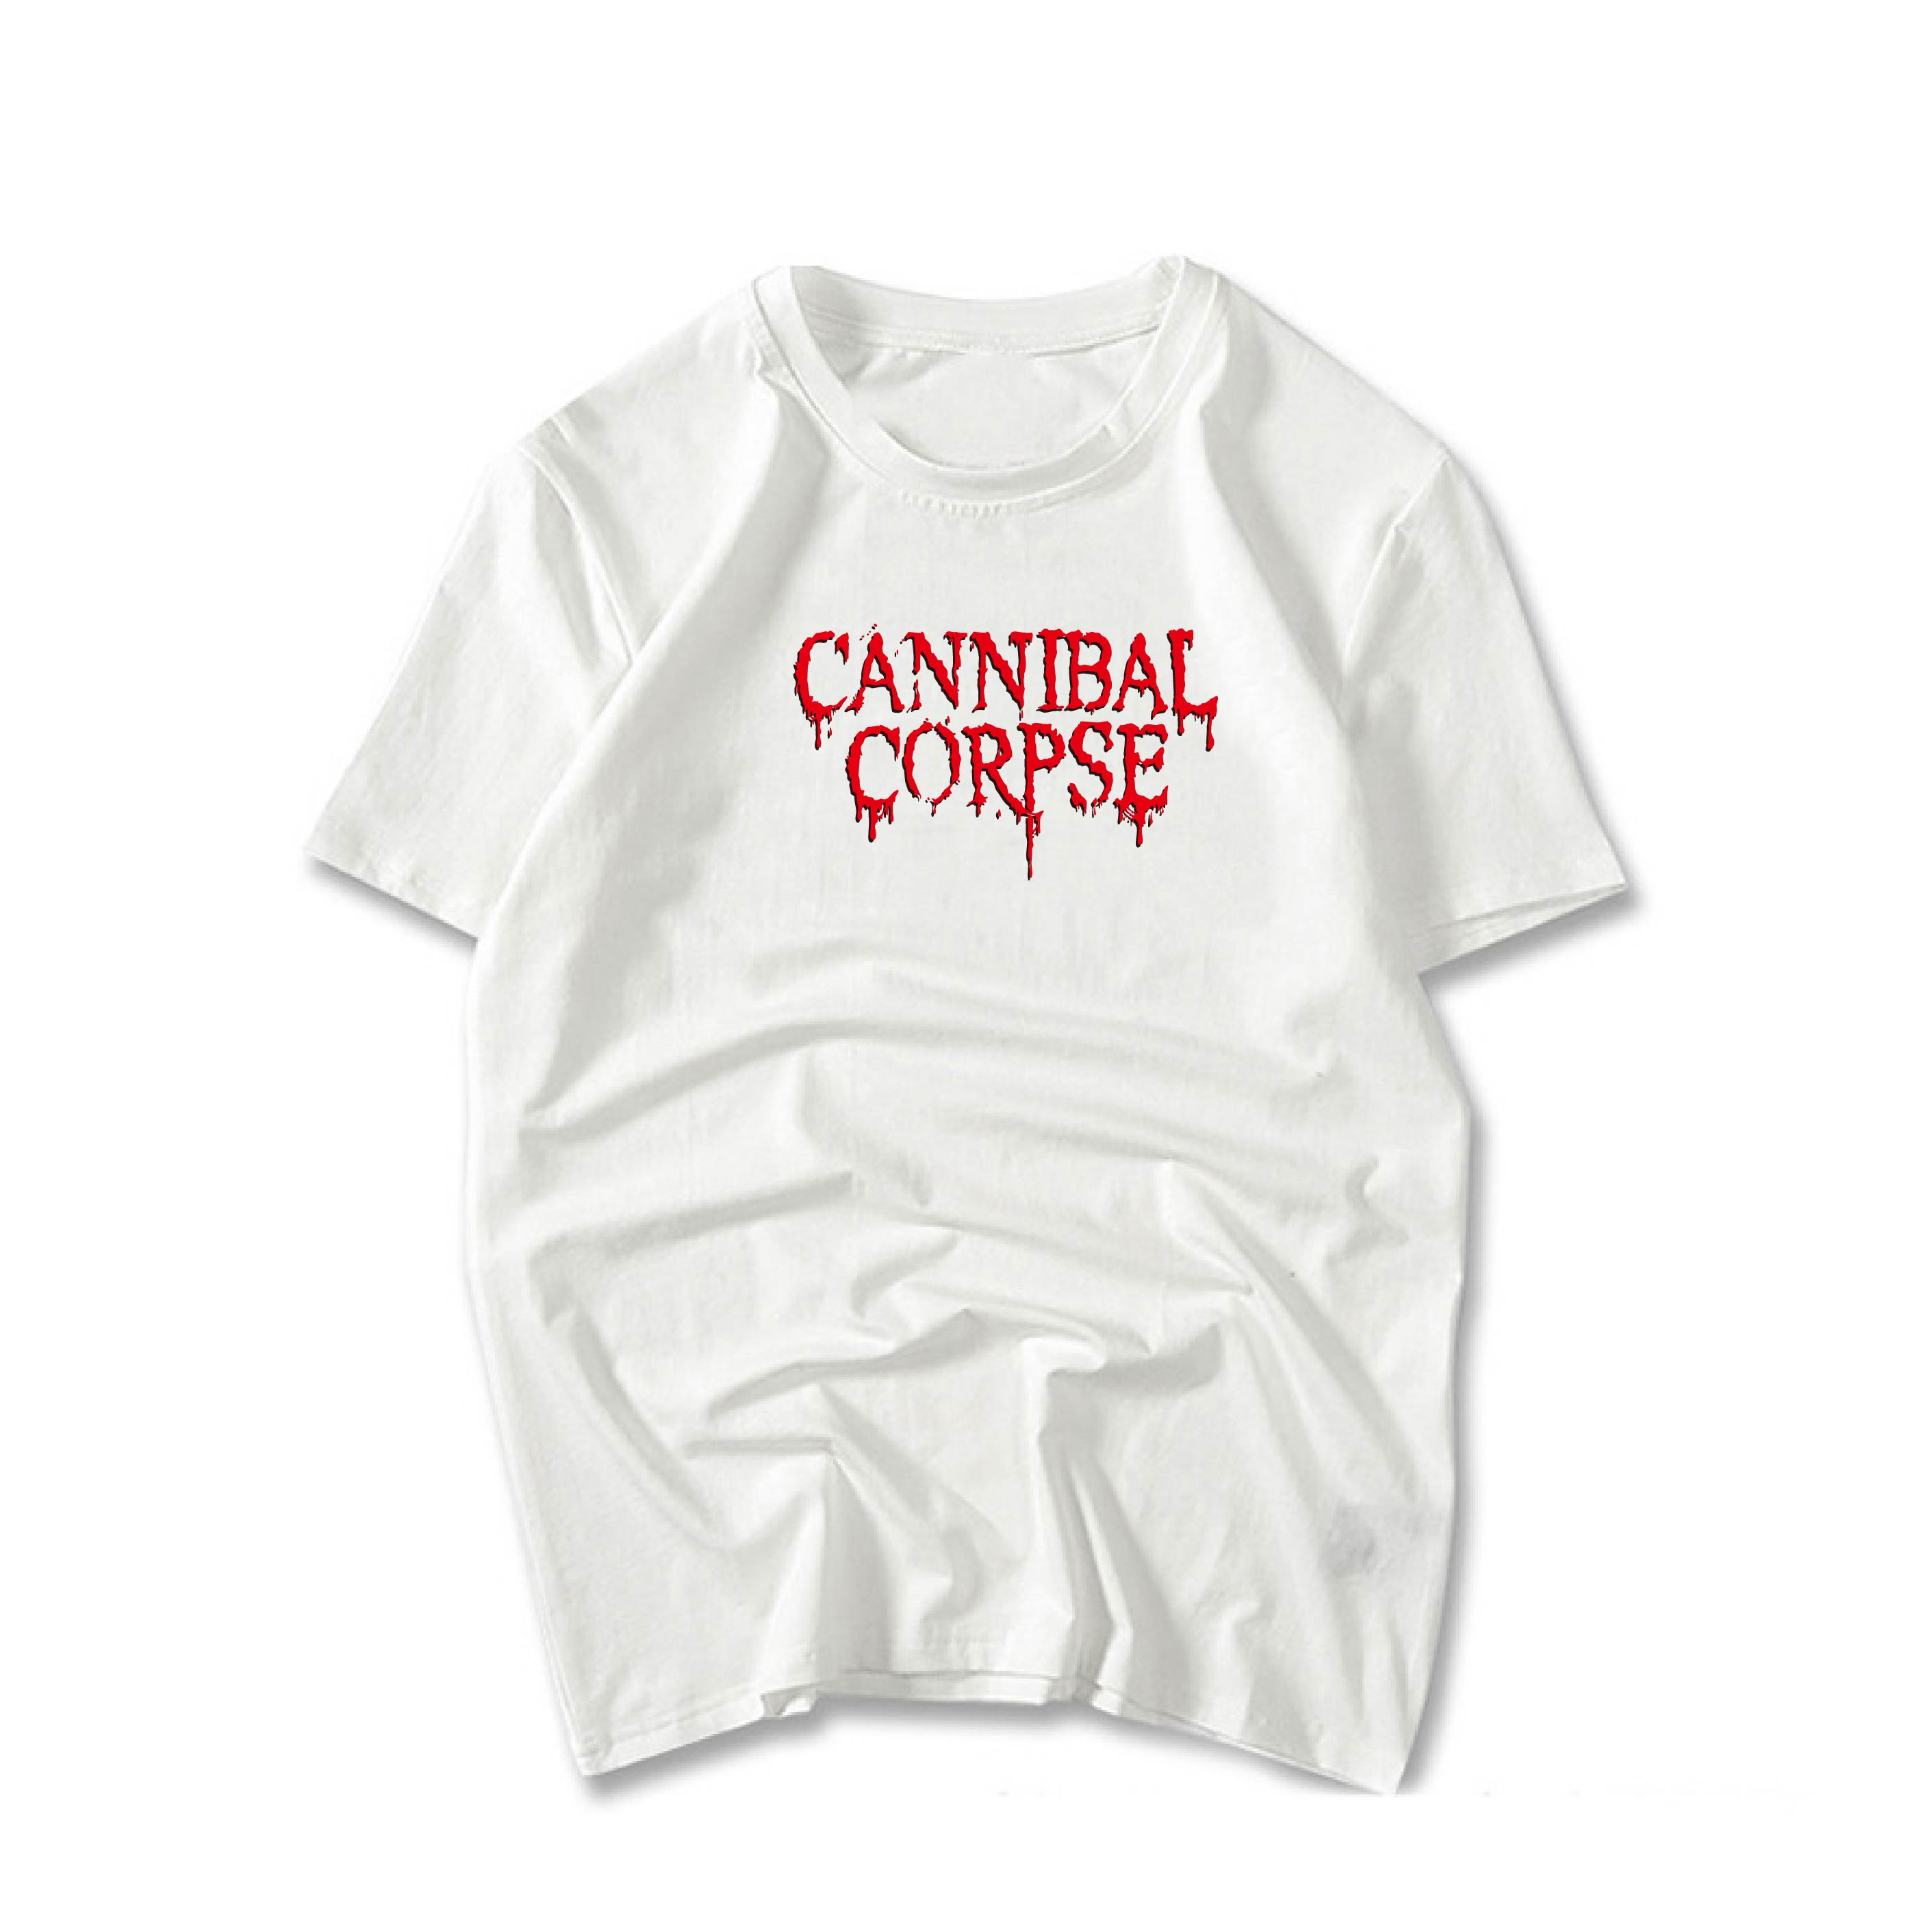 Online get cheap cannibal corpse alibaba for Group t shirts cheap